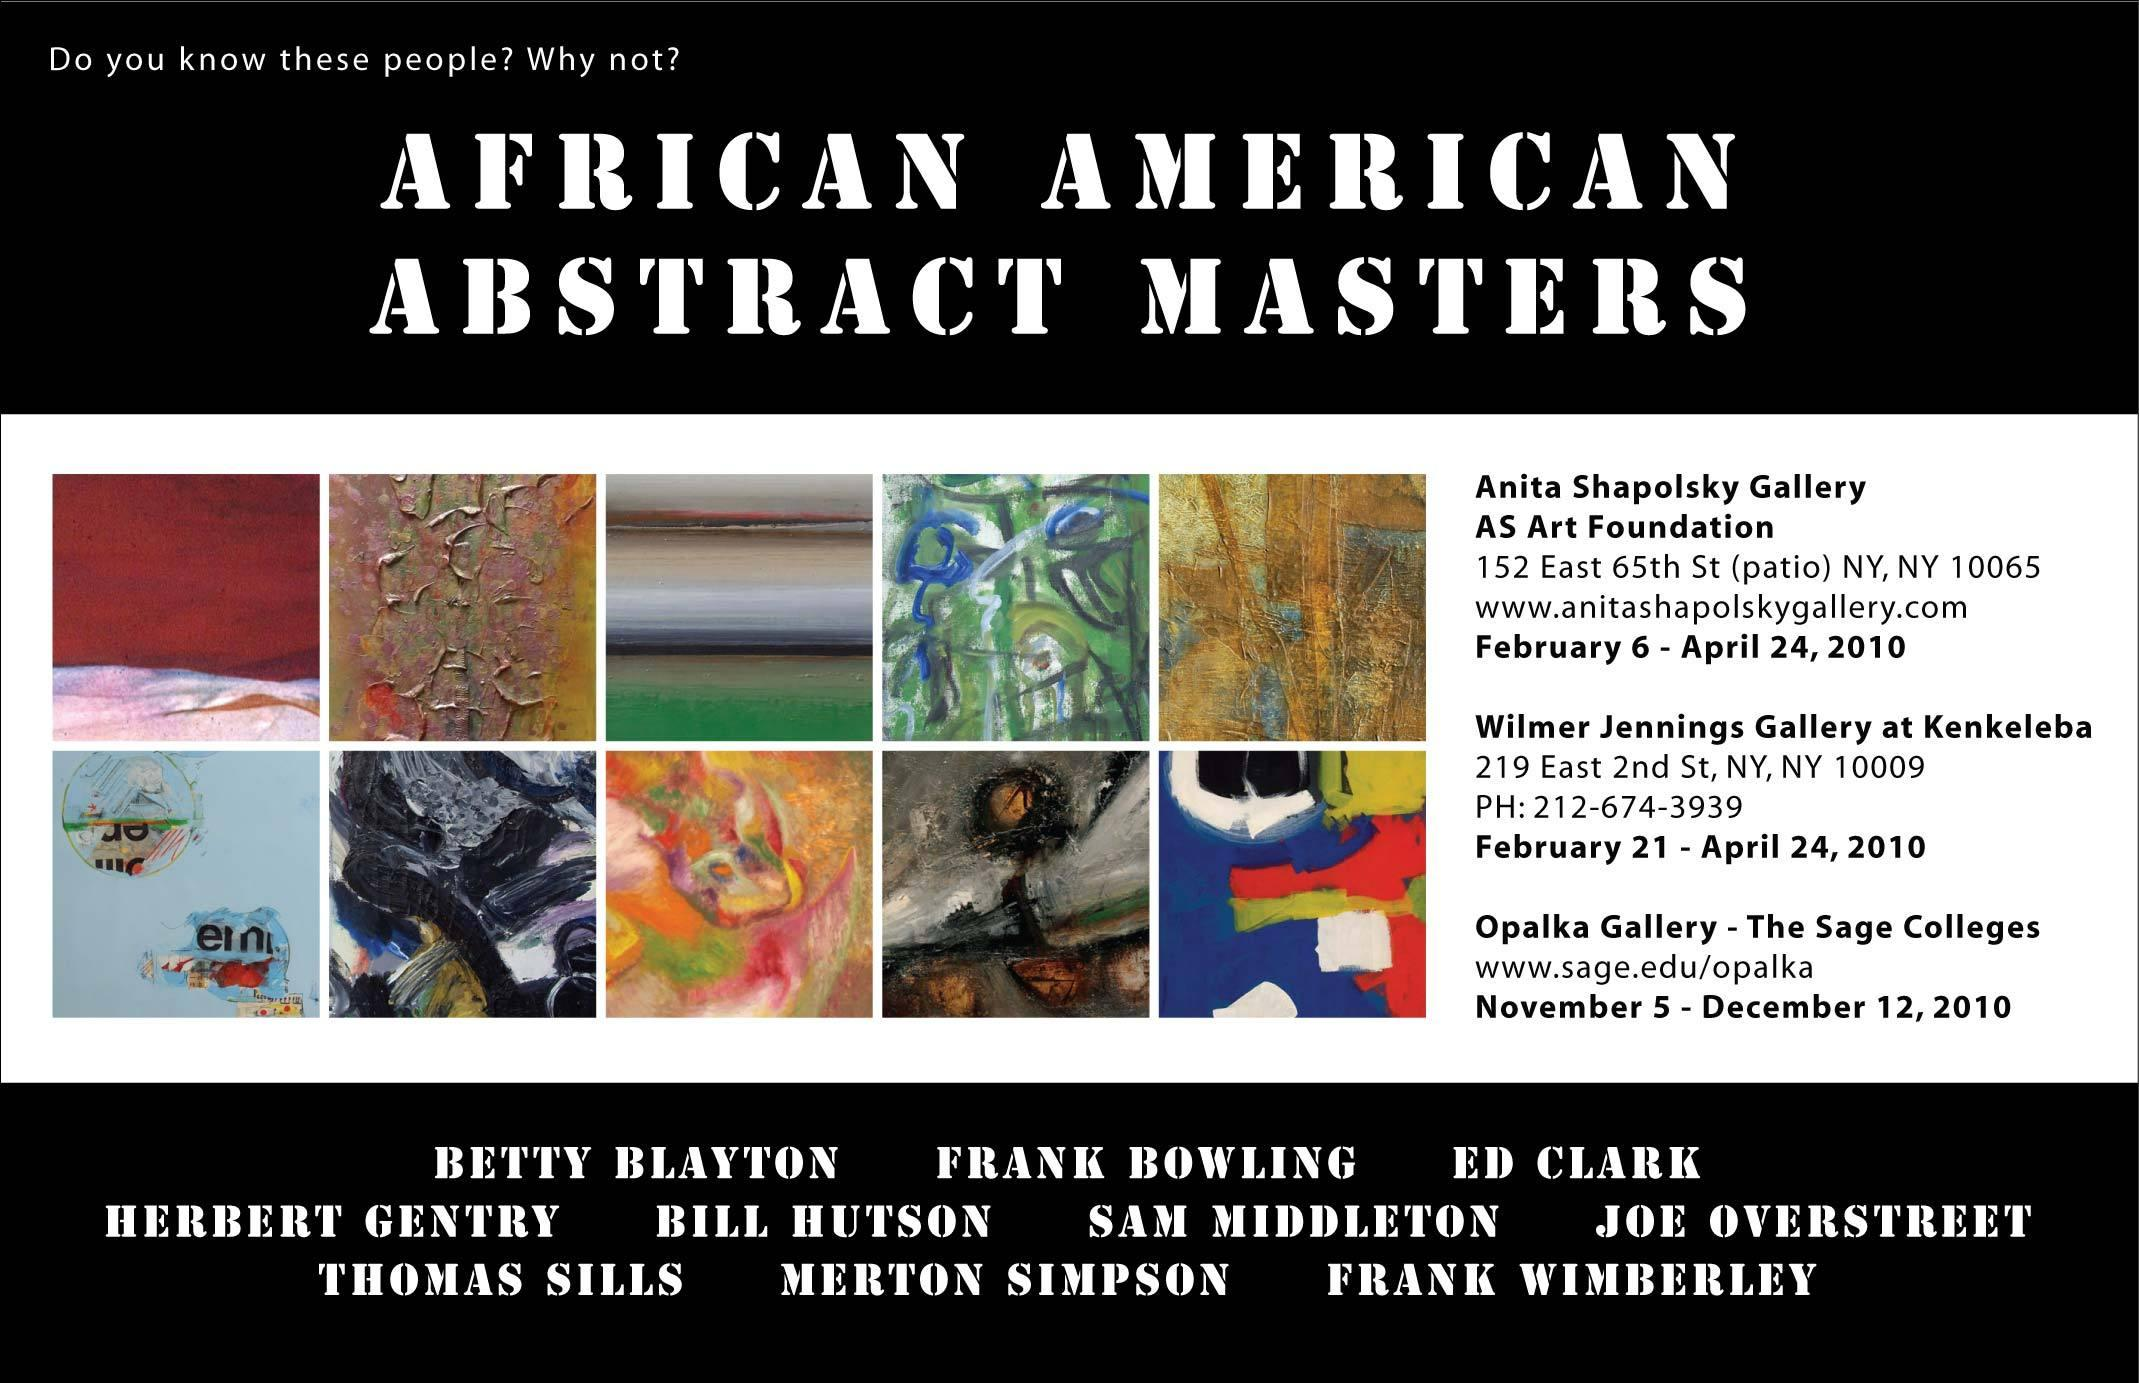 African American Abstract Masters Artwire Press Release From